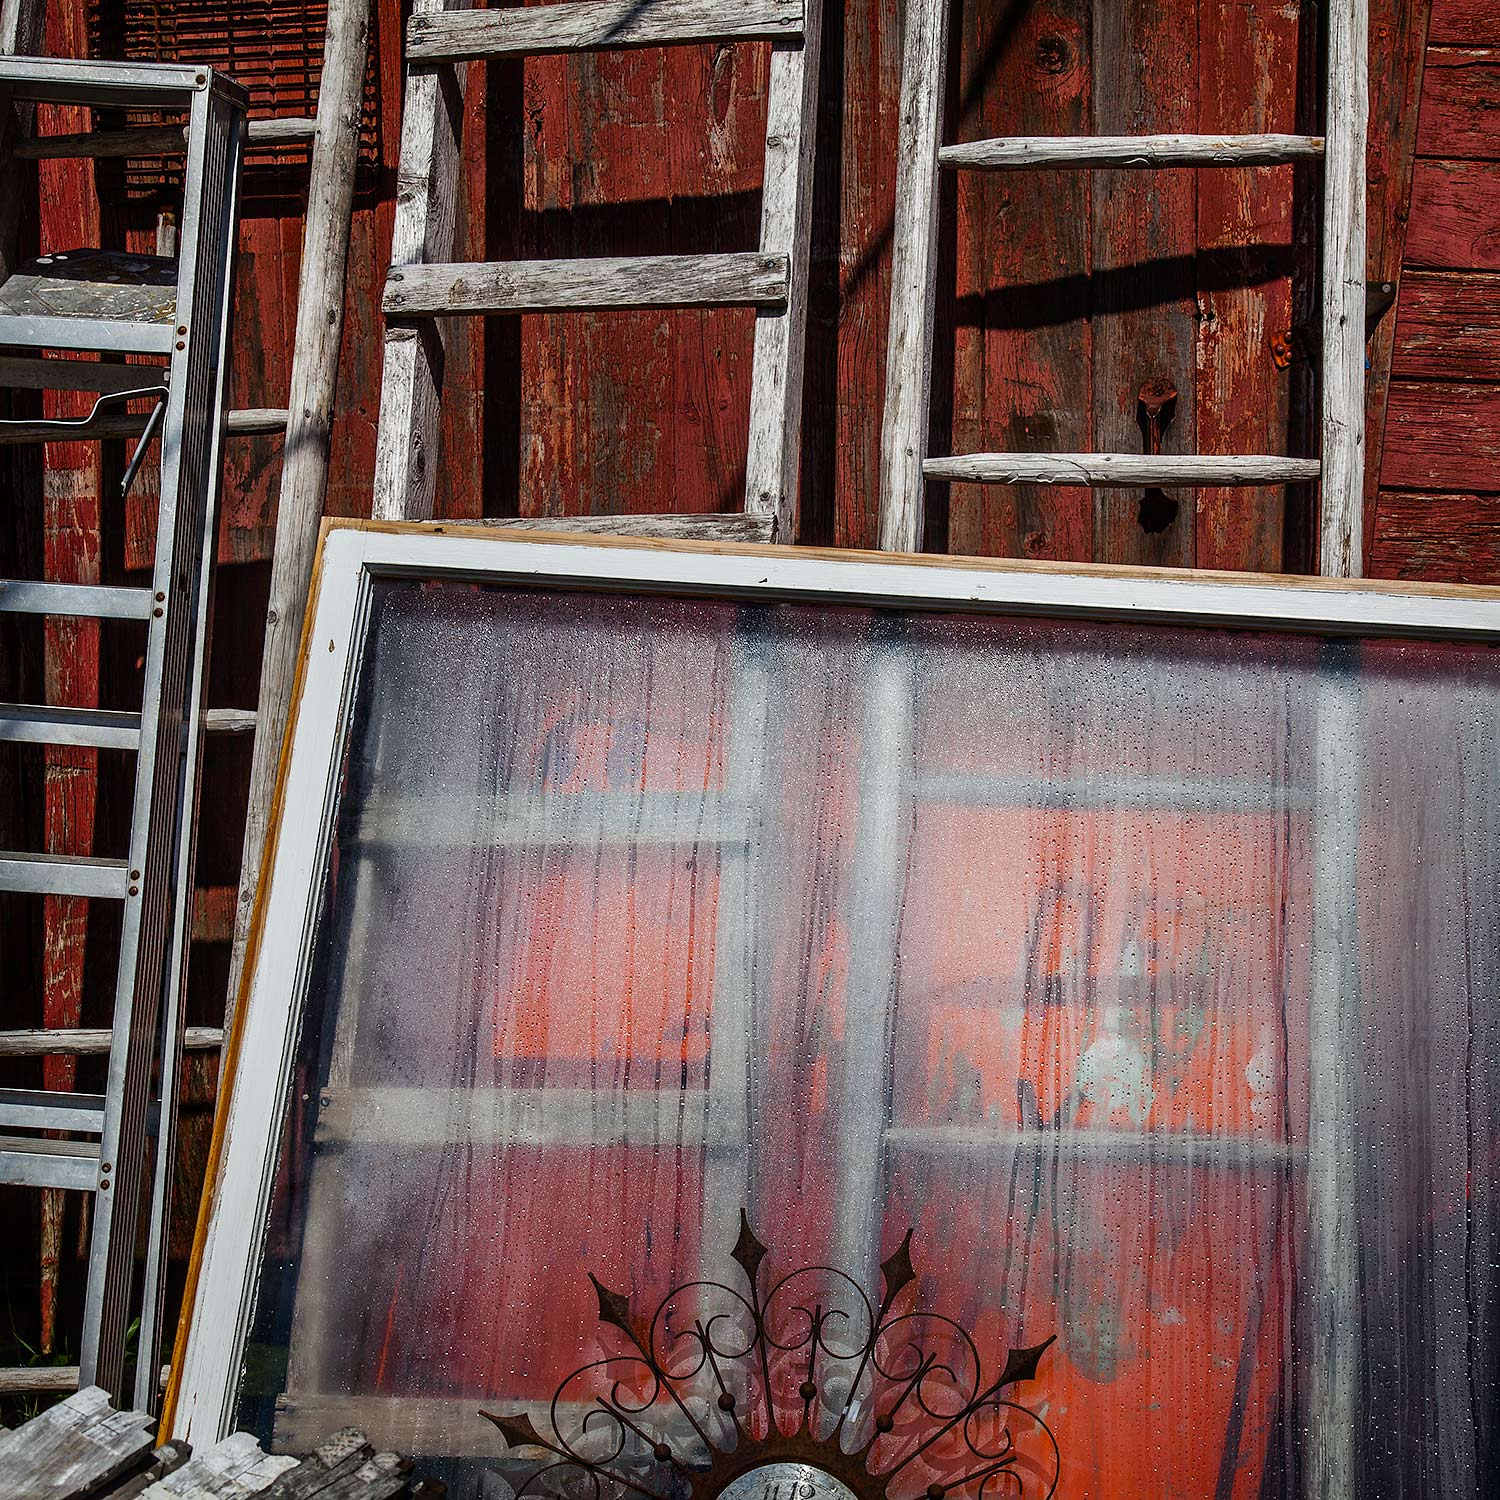 Window and Ladders, Searsport, Maine, 2014